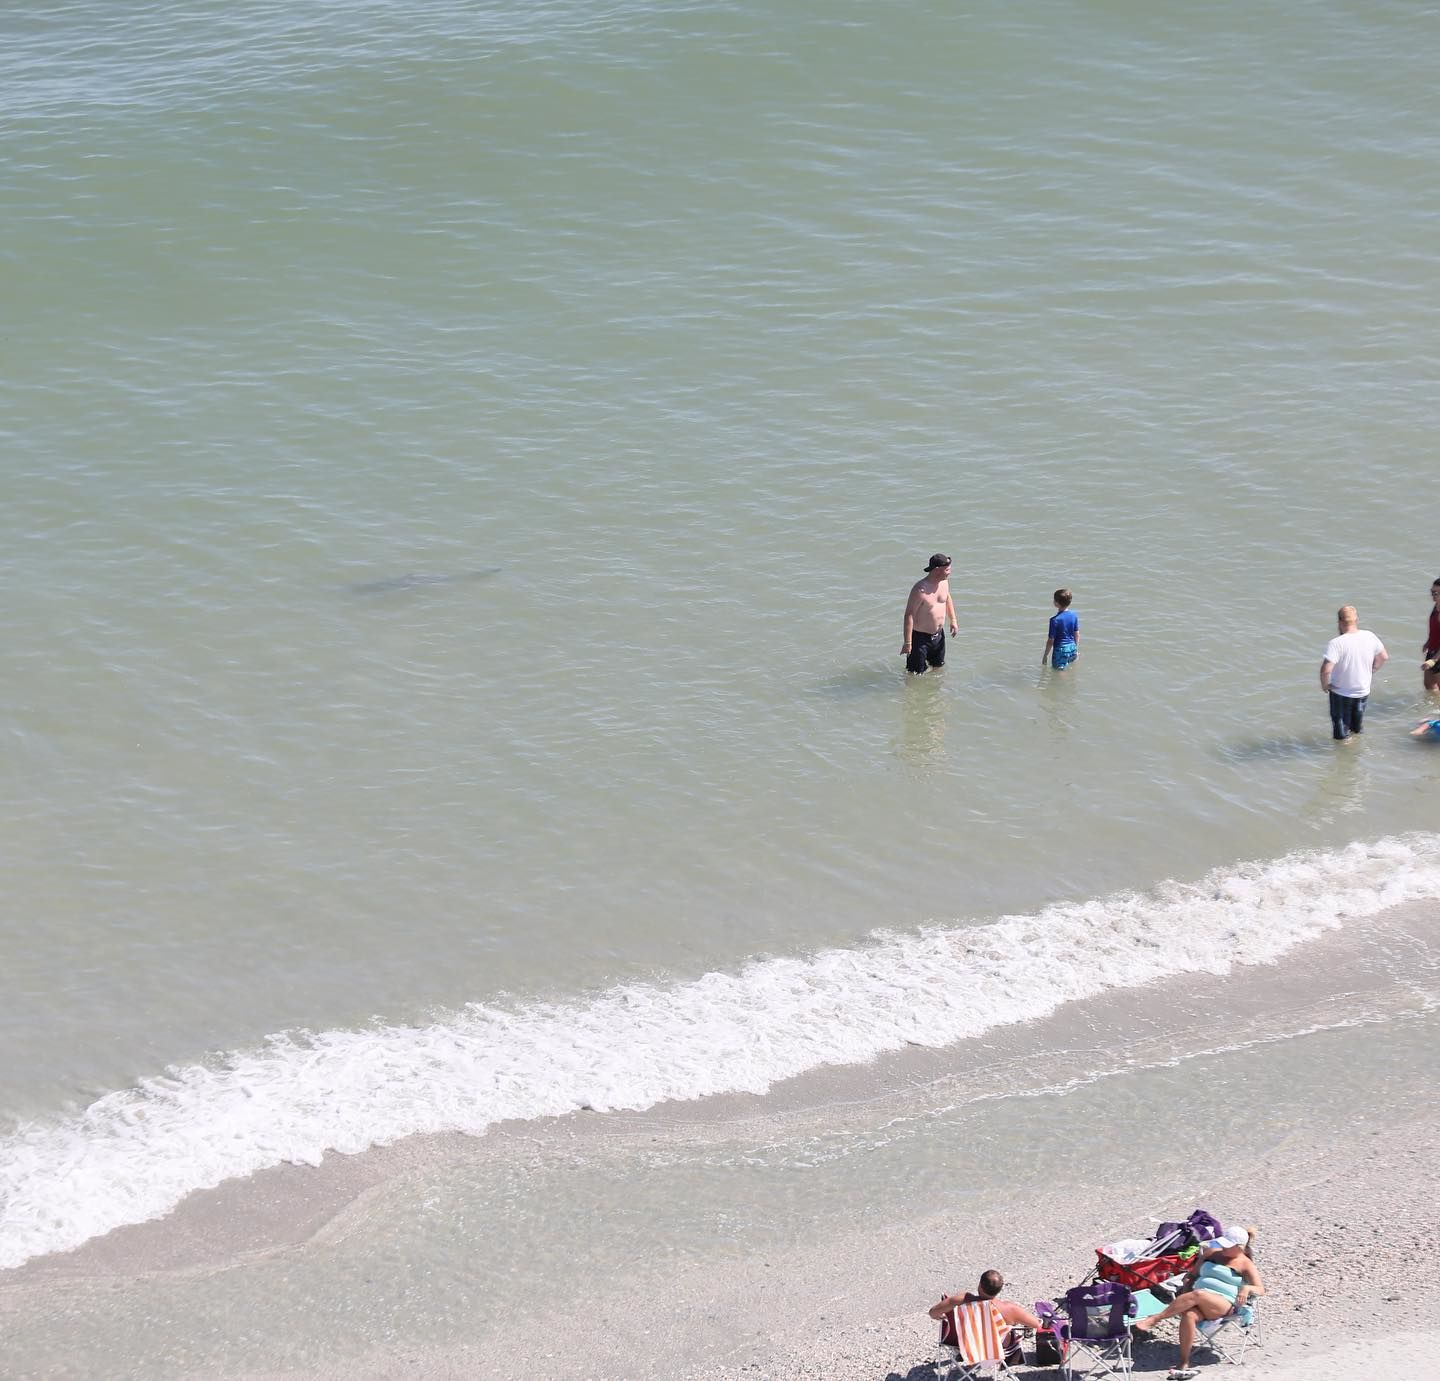 Ginger Gilmer of Tennessee captured photos of sharks swimming within feet of swimmers at North Myrtle Beach. (Photo courtesy of Ginger Gilmer)